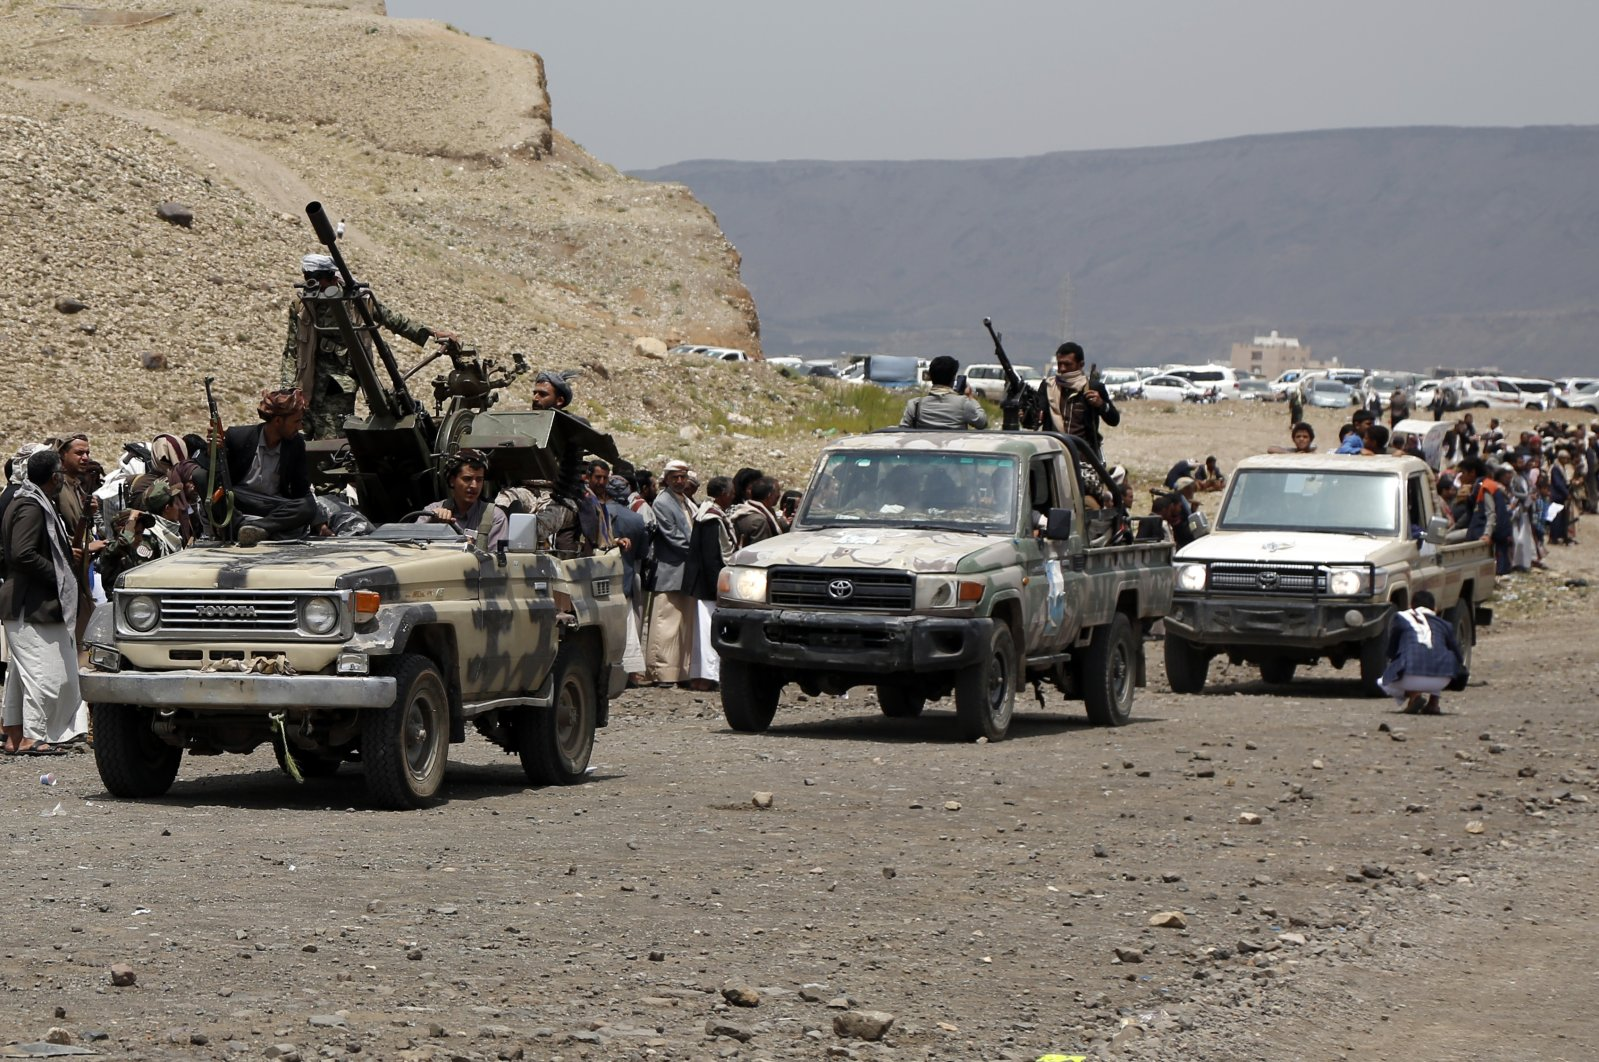 Tribespeople loyal to the Houthis ride trucks mounted with machine guns during an armed tribal gathering on the outskirts of Sanaa, Yemen, July 8, 2020. (Photo by Getty Images)